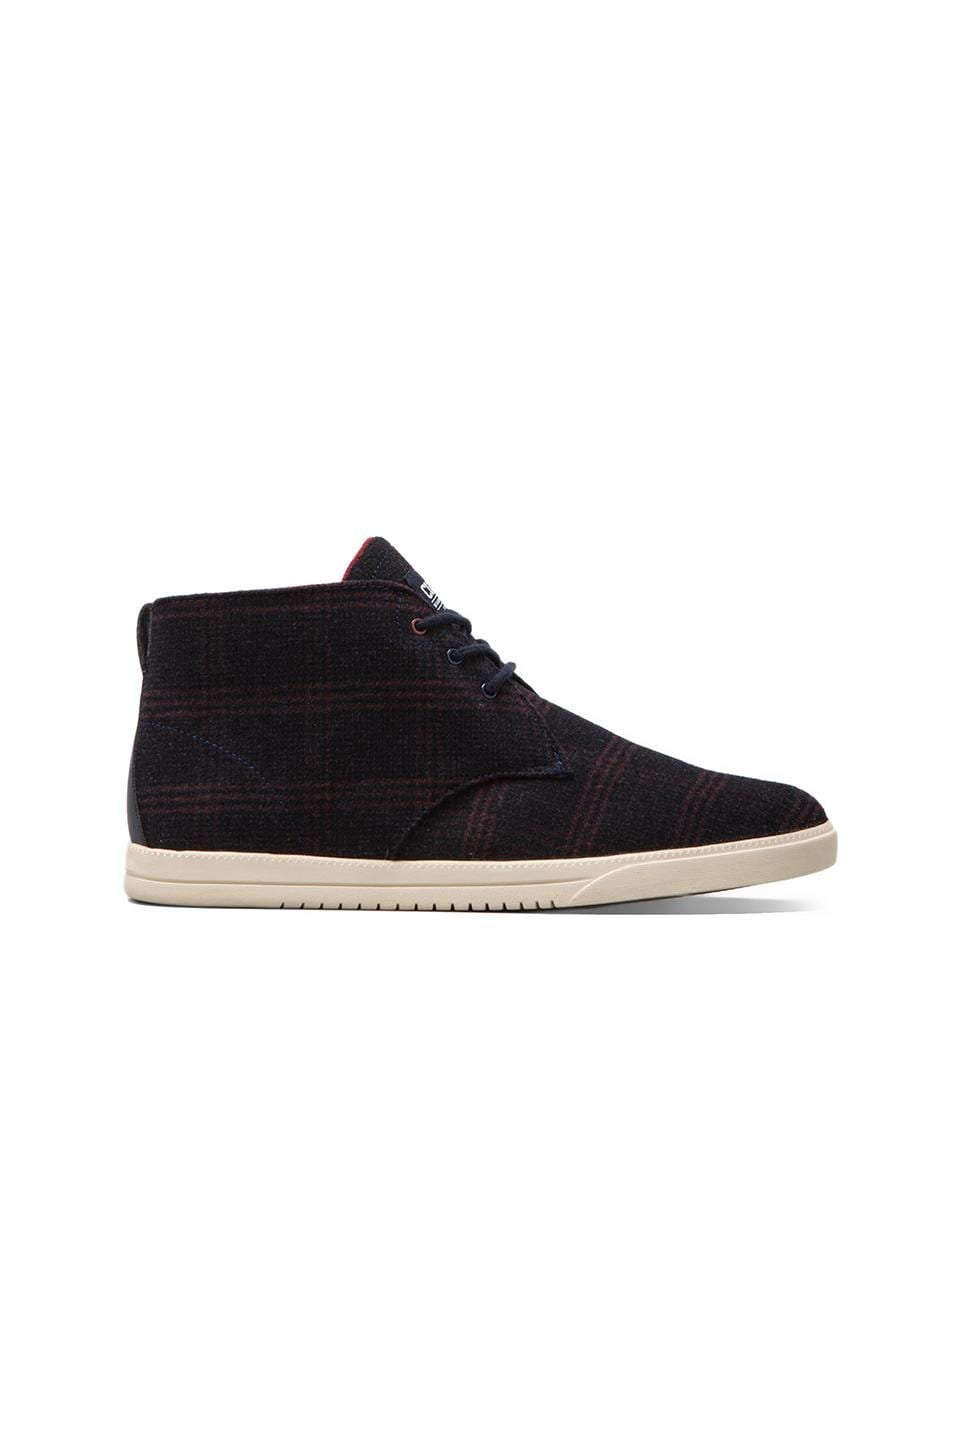 Clae Strayhorn Textile in Deep Navy Plaid